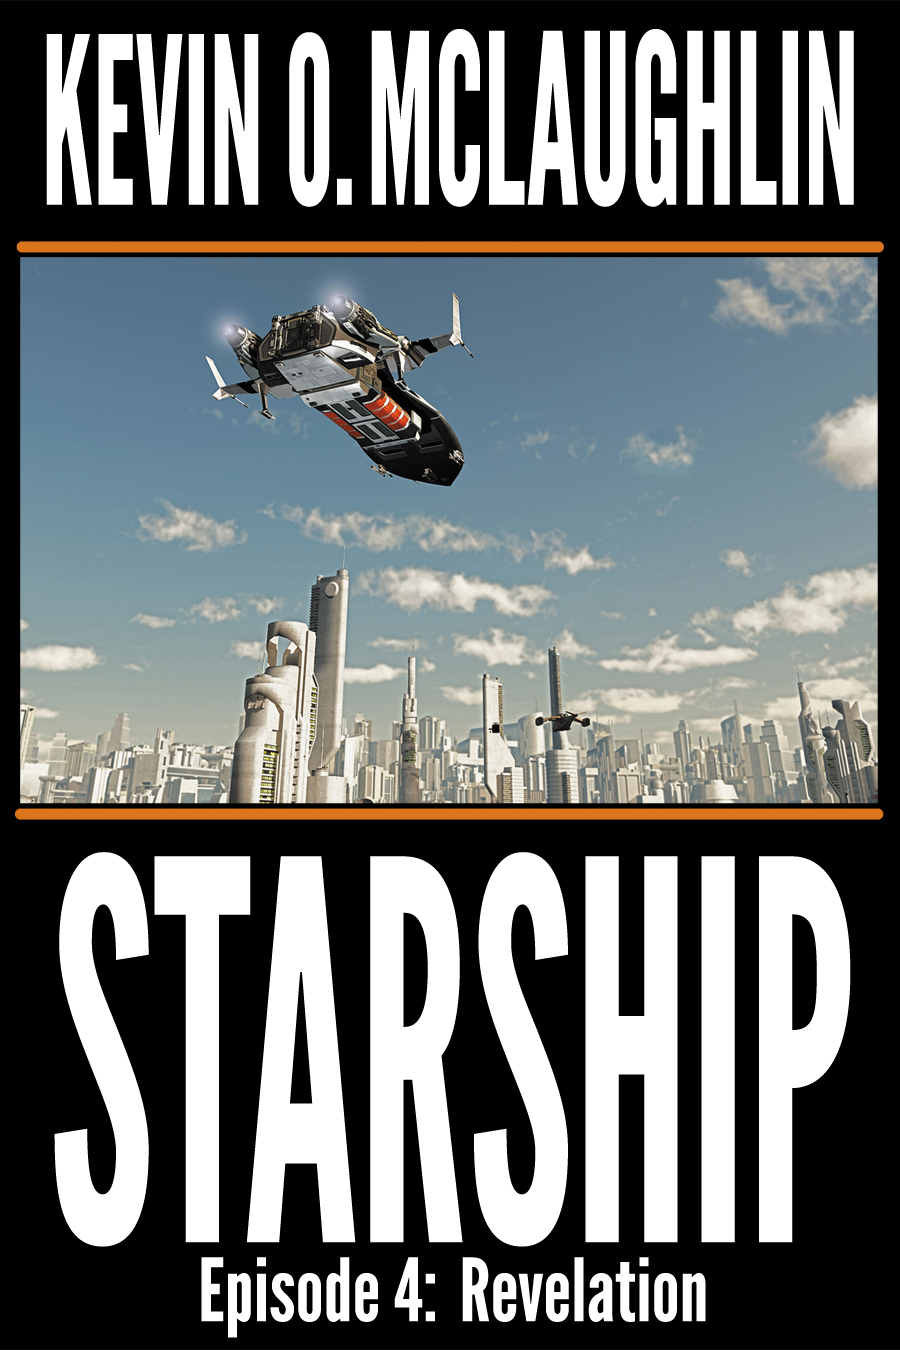 Starship Episode 4: Revelation